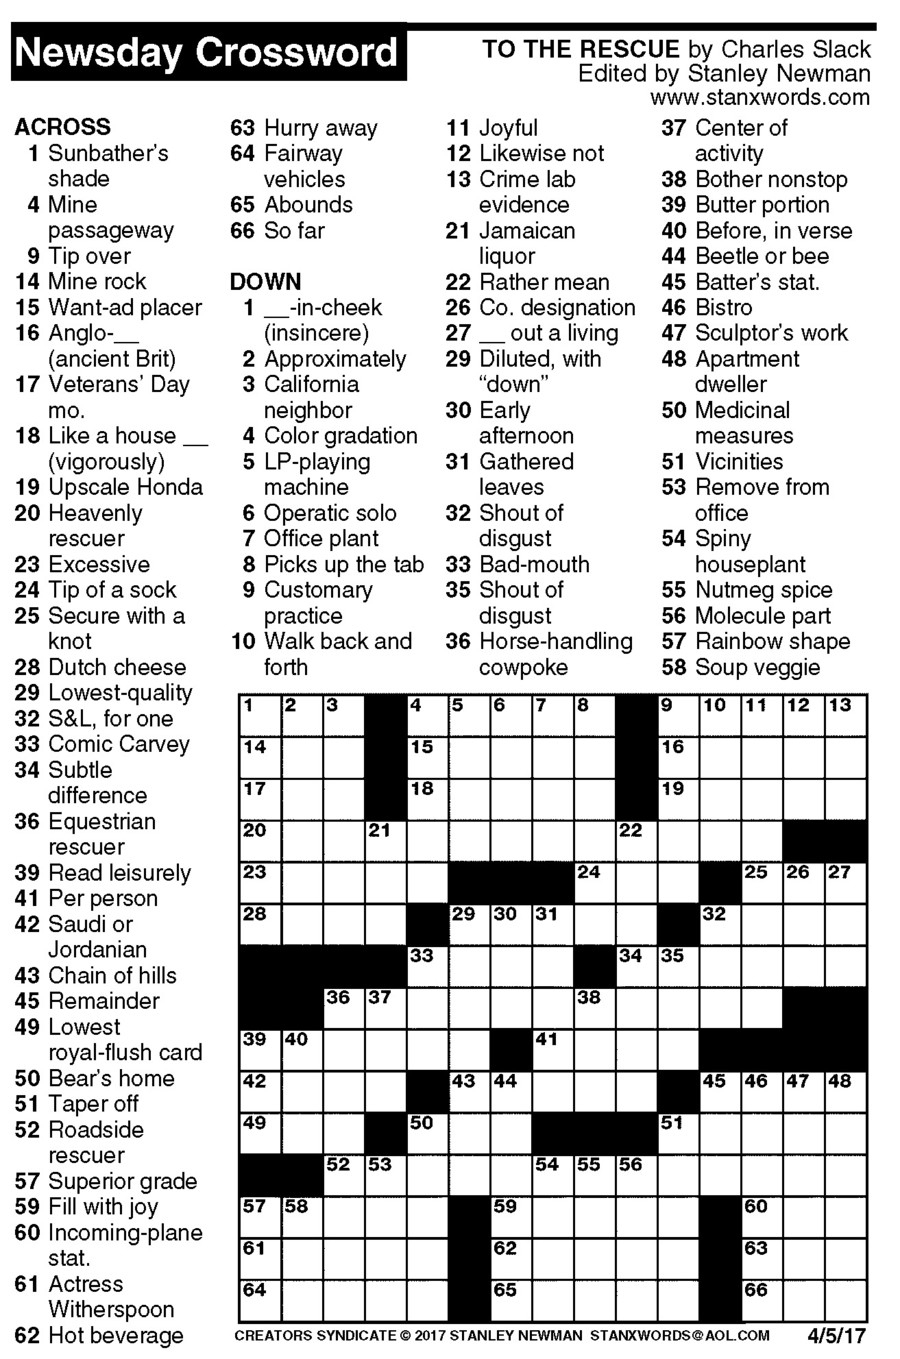 Newsday Crossword Puzzle For Apr 05, 2017,stanley Newman - Printable Crossword Puzzles Newsday